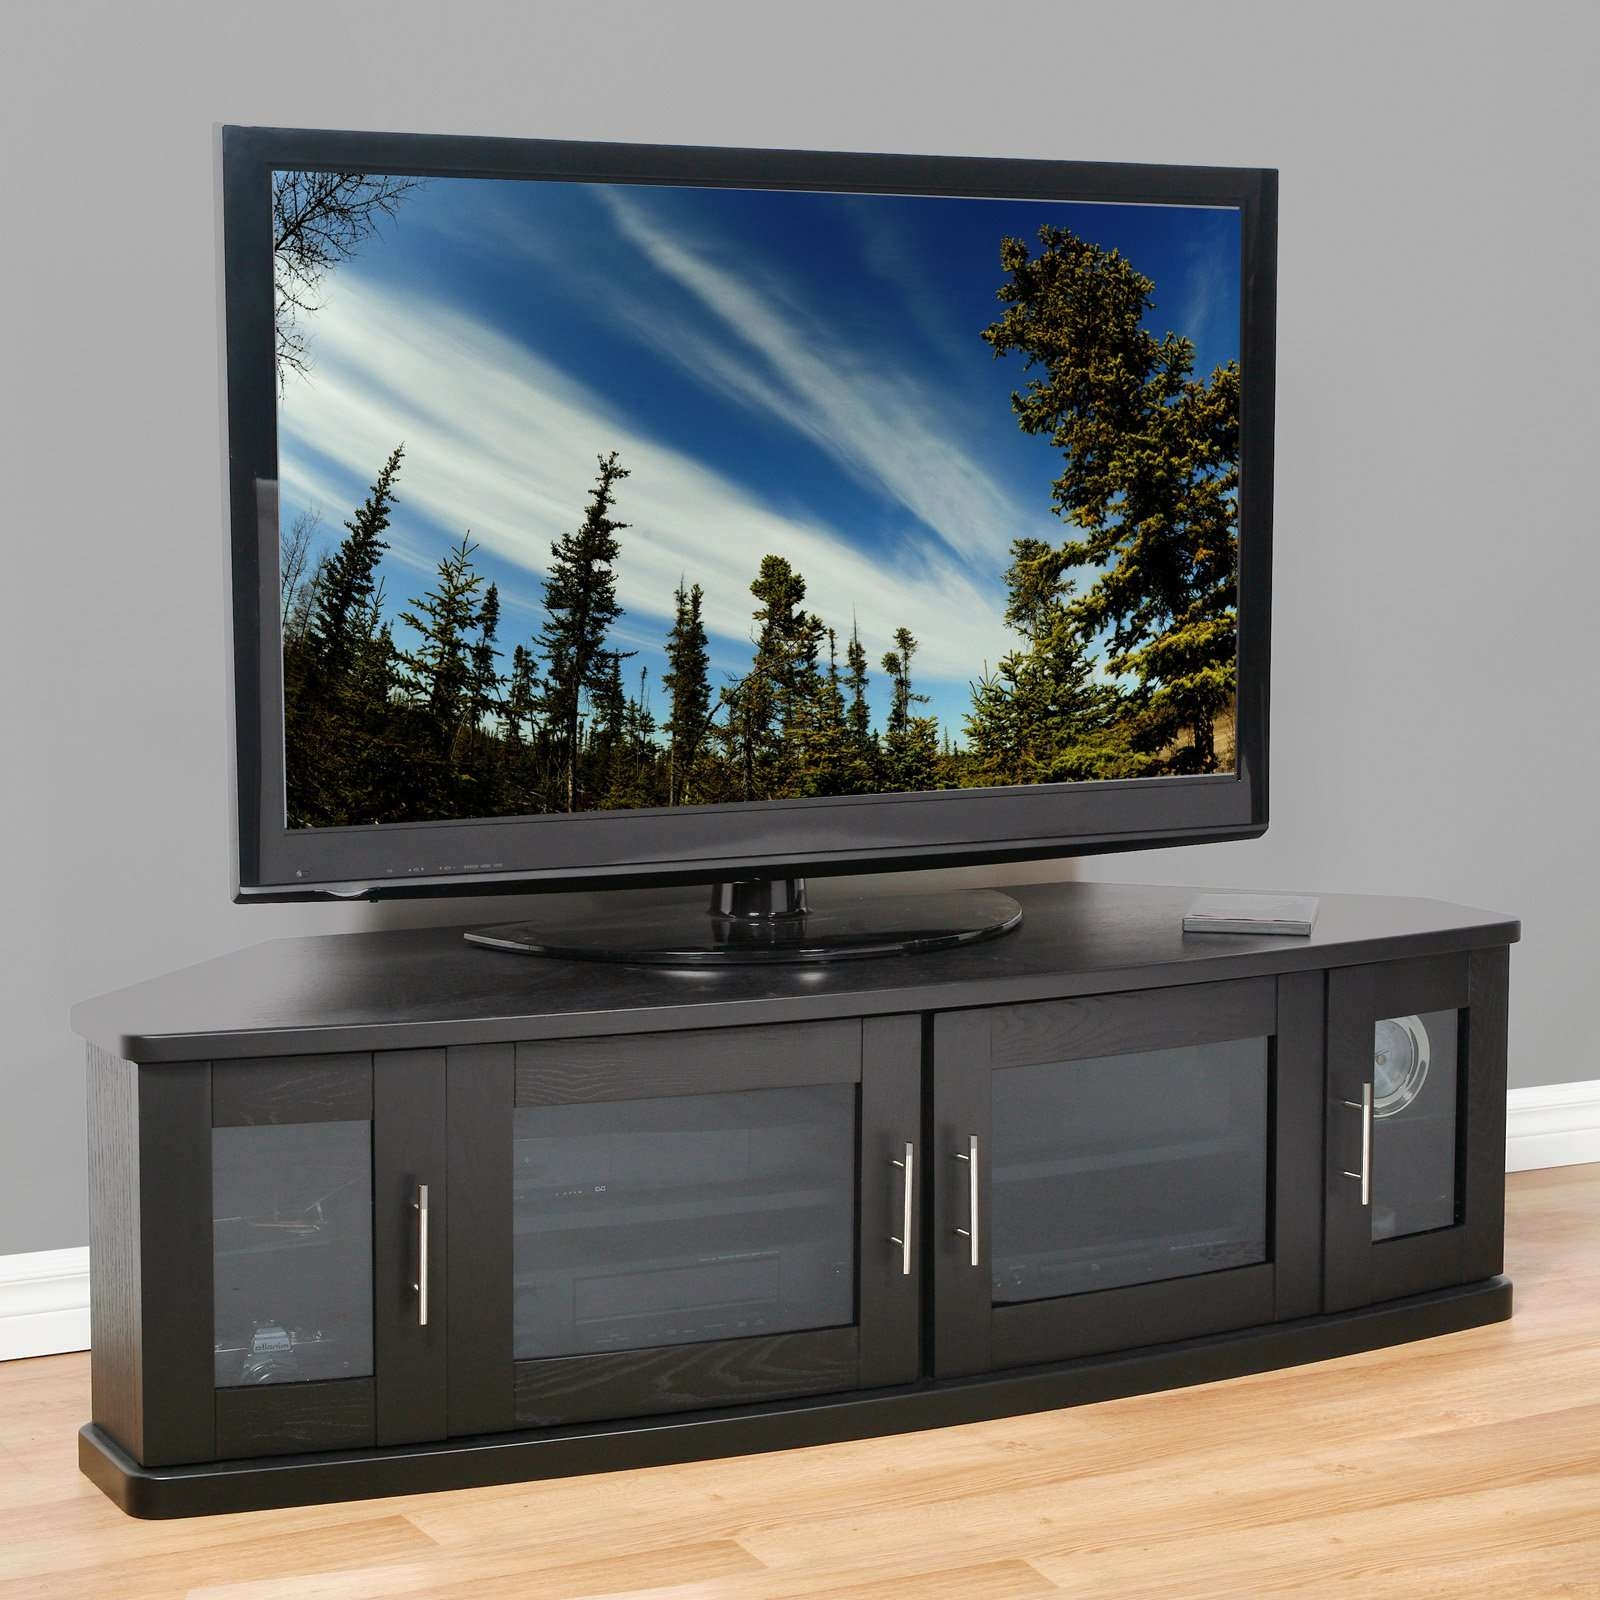 Plateau Newport 62 Inch Corner Tv Stand In Black – Walmart Pertaining To Modern Tv Stands For 60 Inch Tvs (View 11 of 15)